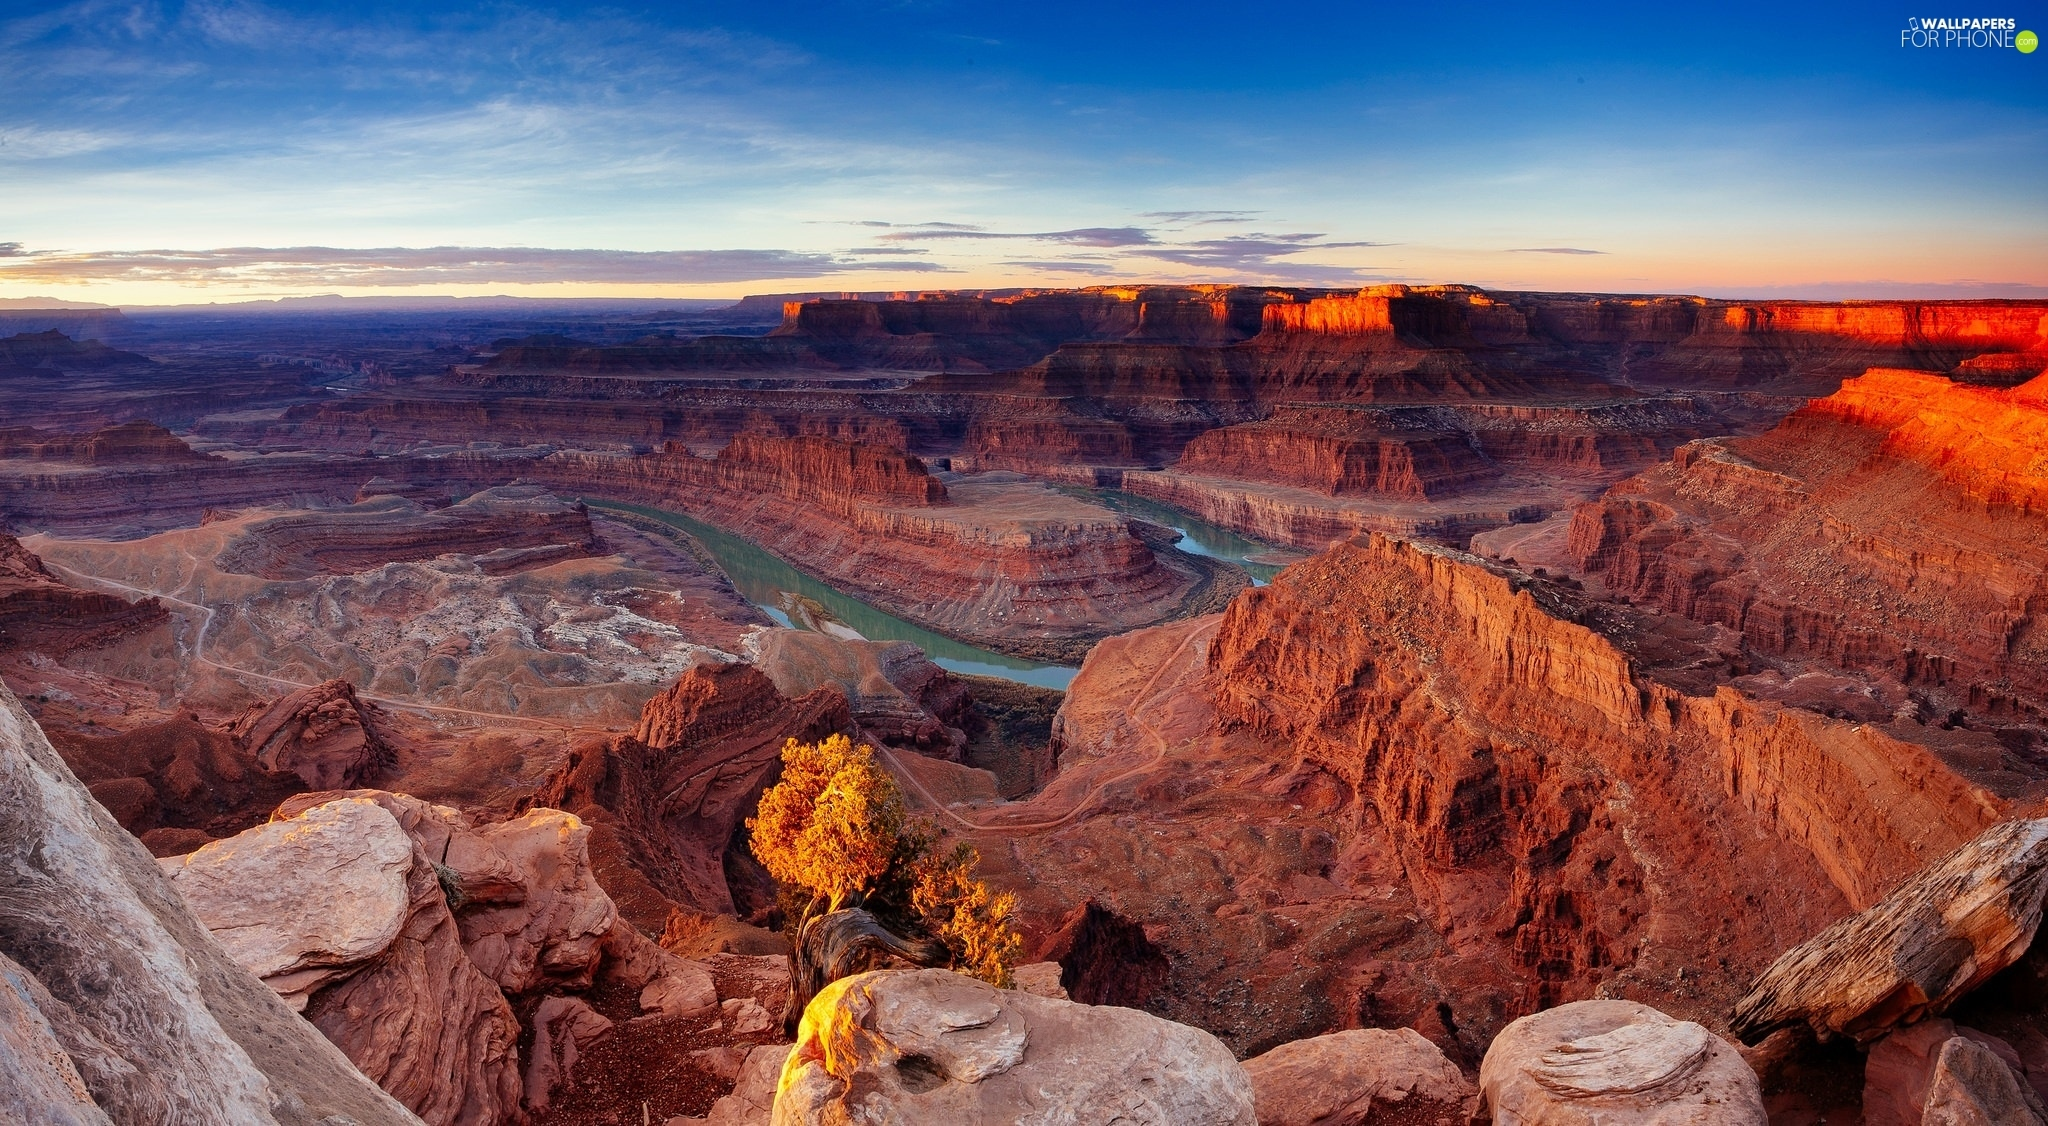 The United States, Canyonlands National Park, canyon, Utah State